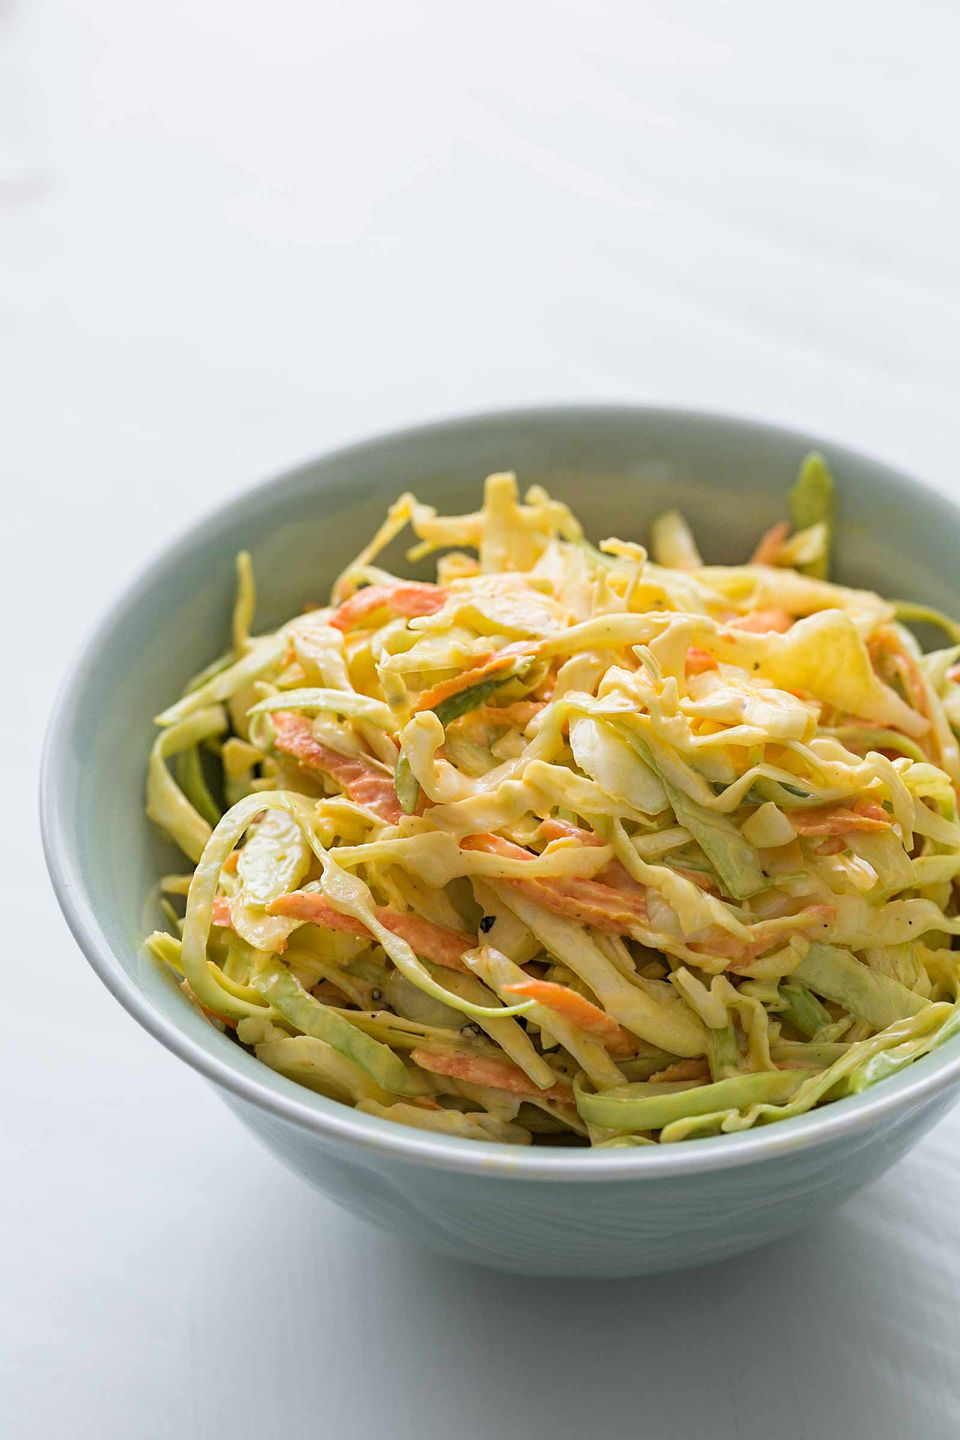 Easy Coleslaw with Mayo Coleslaw Dressing in a serving bowl